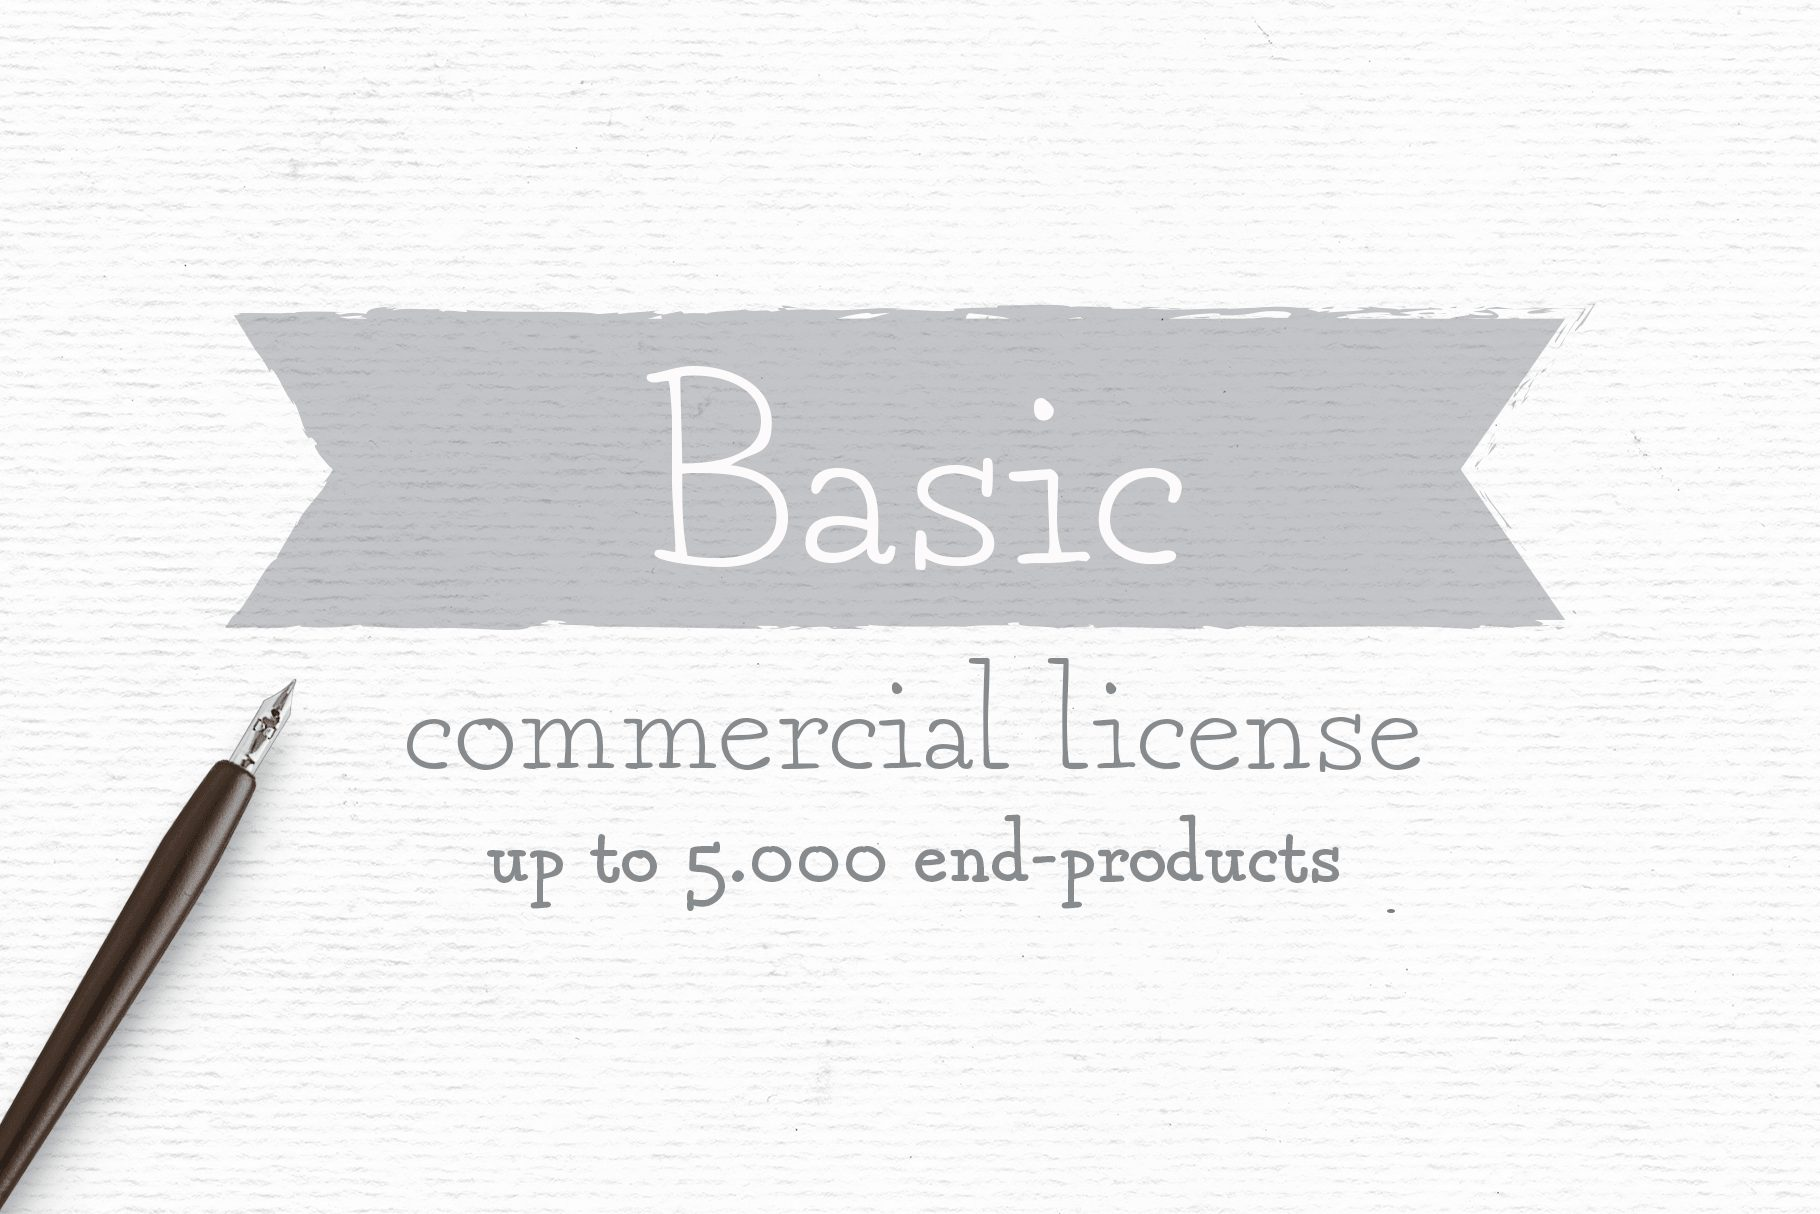 Clipart with commercial license